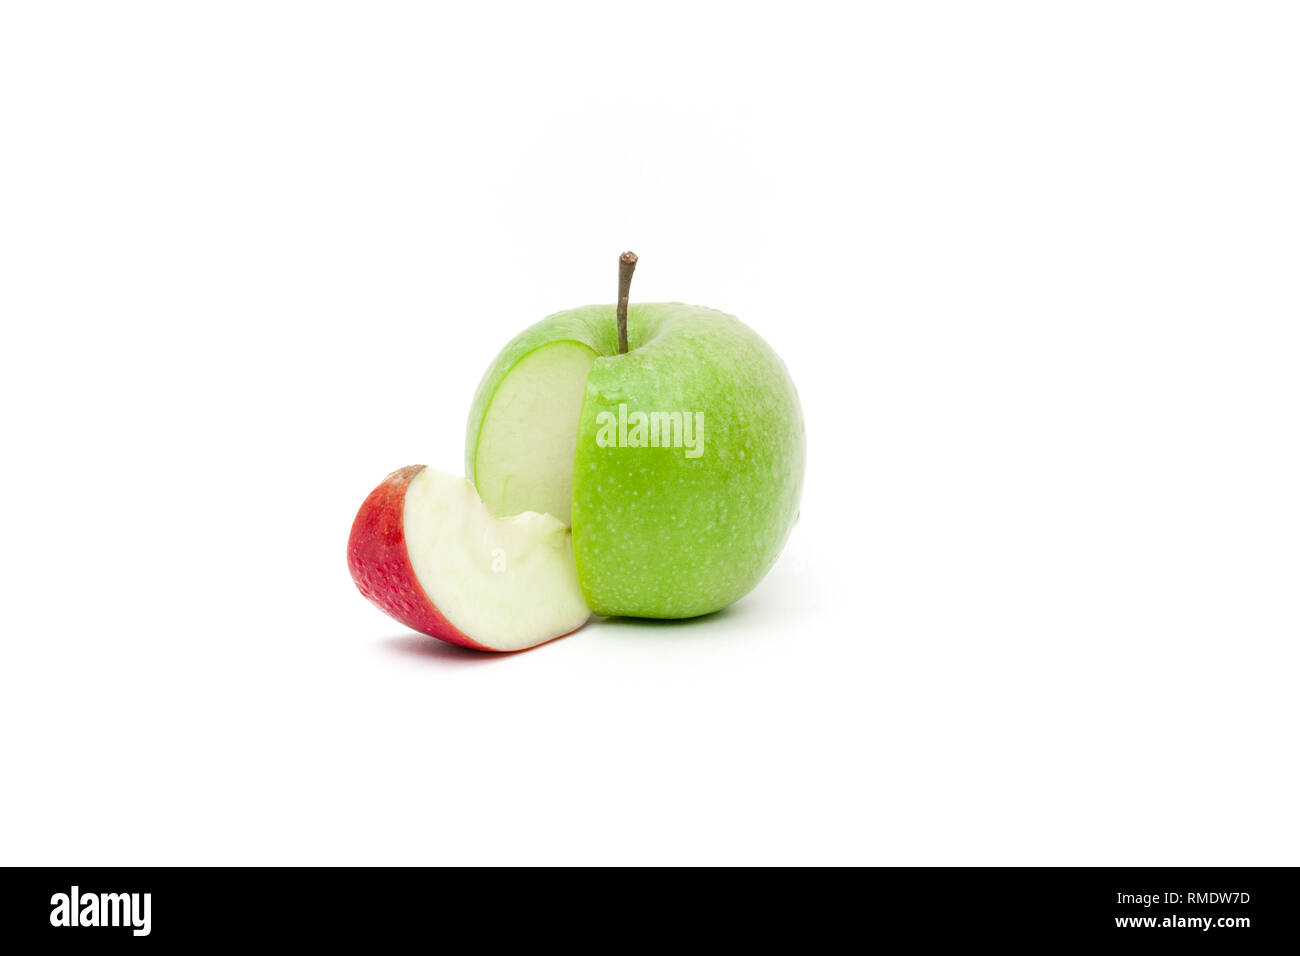 Color complementarity in a juicy green skin apple with a slice of red skin apple - Stock Image